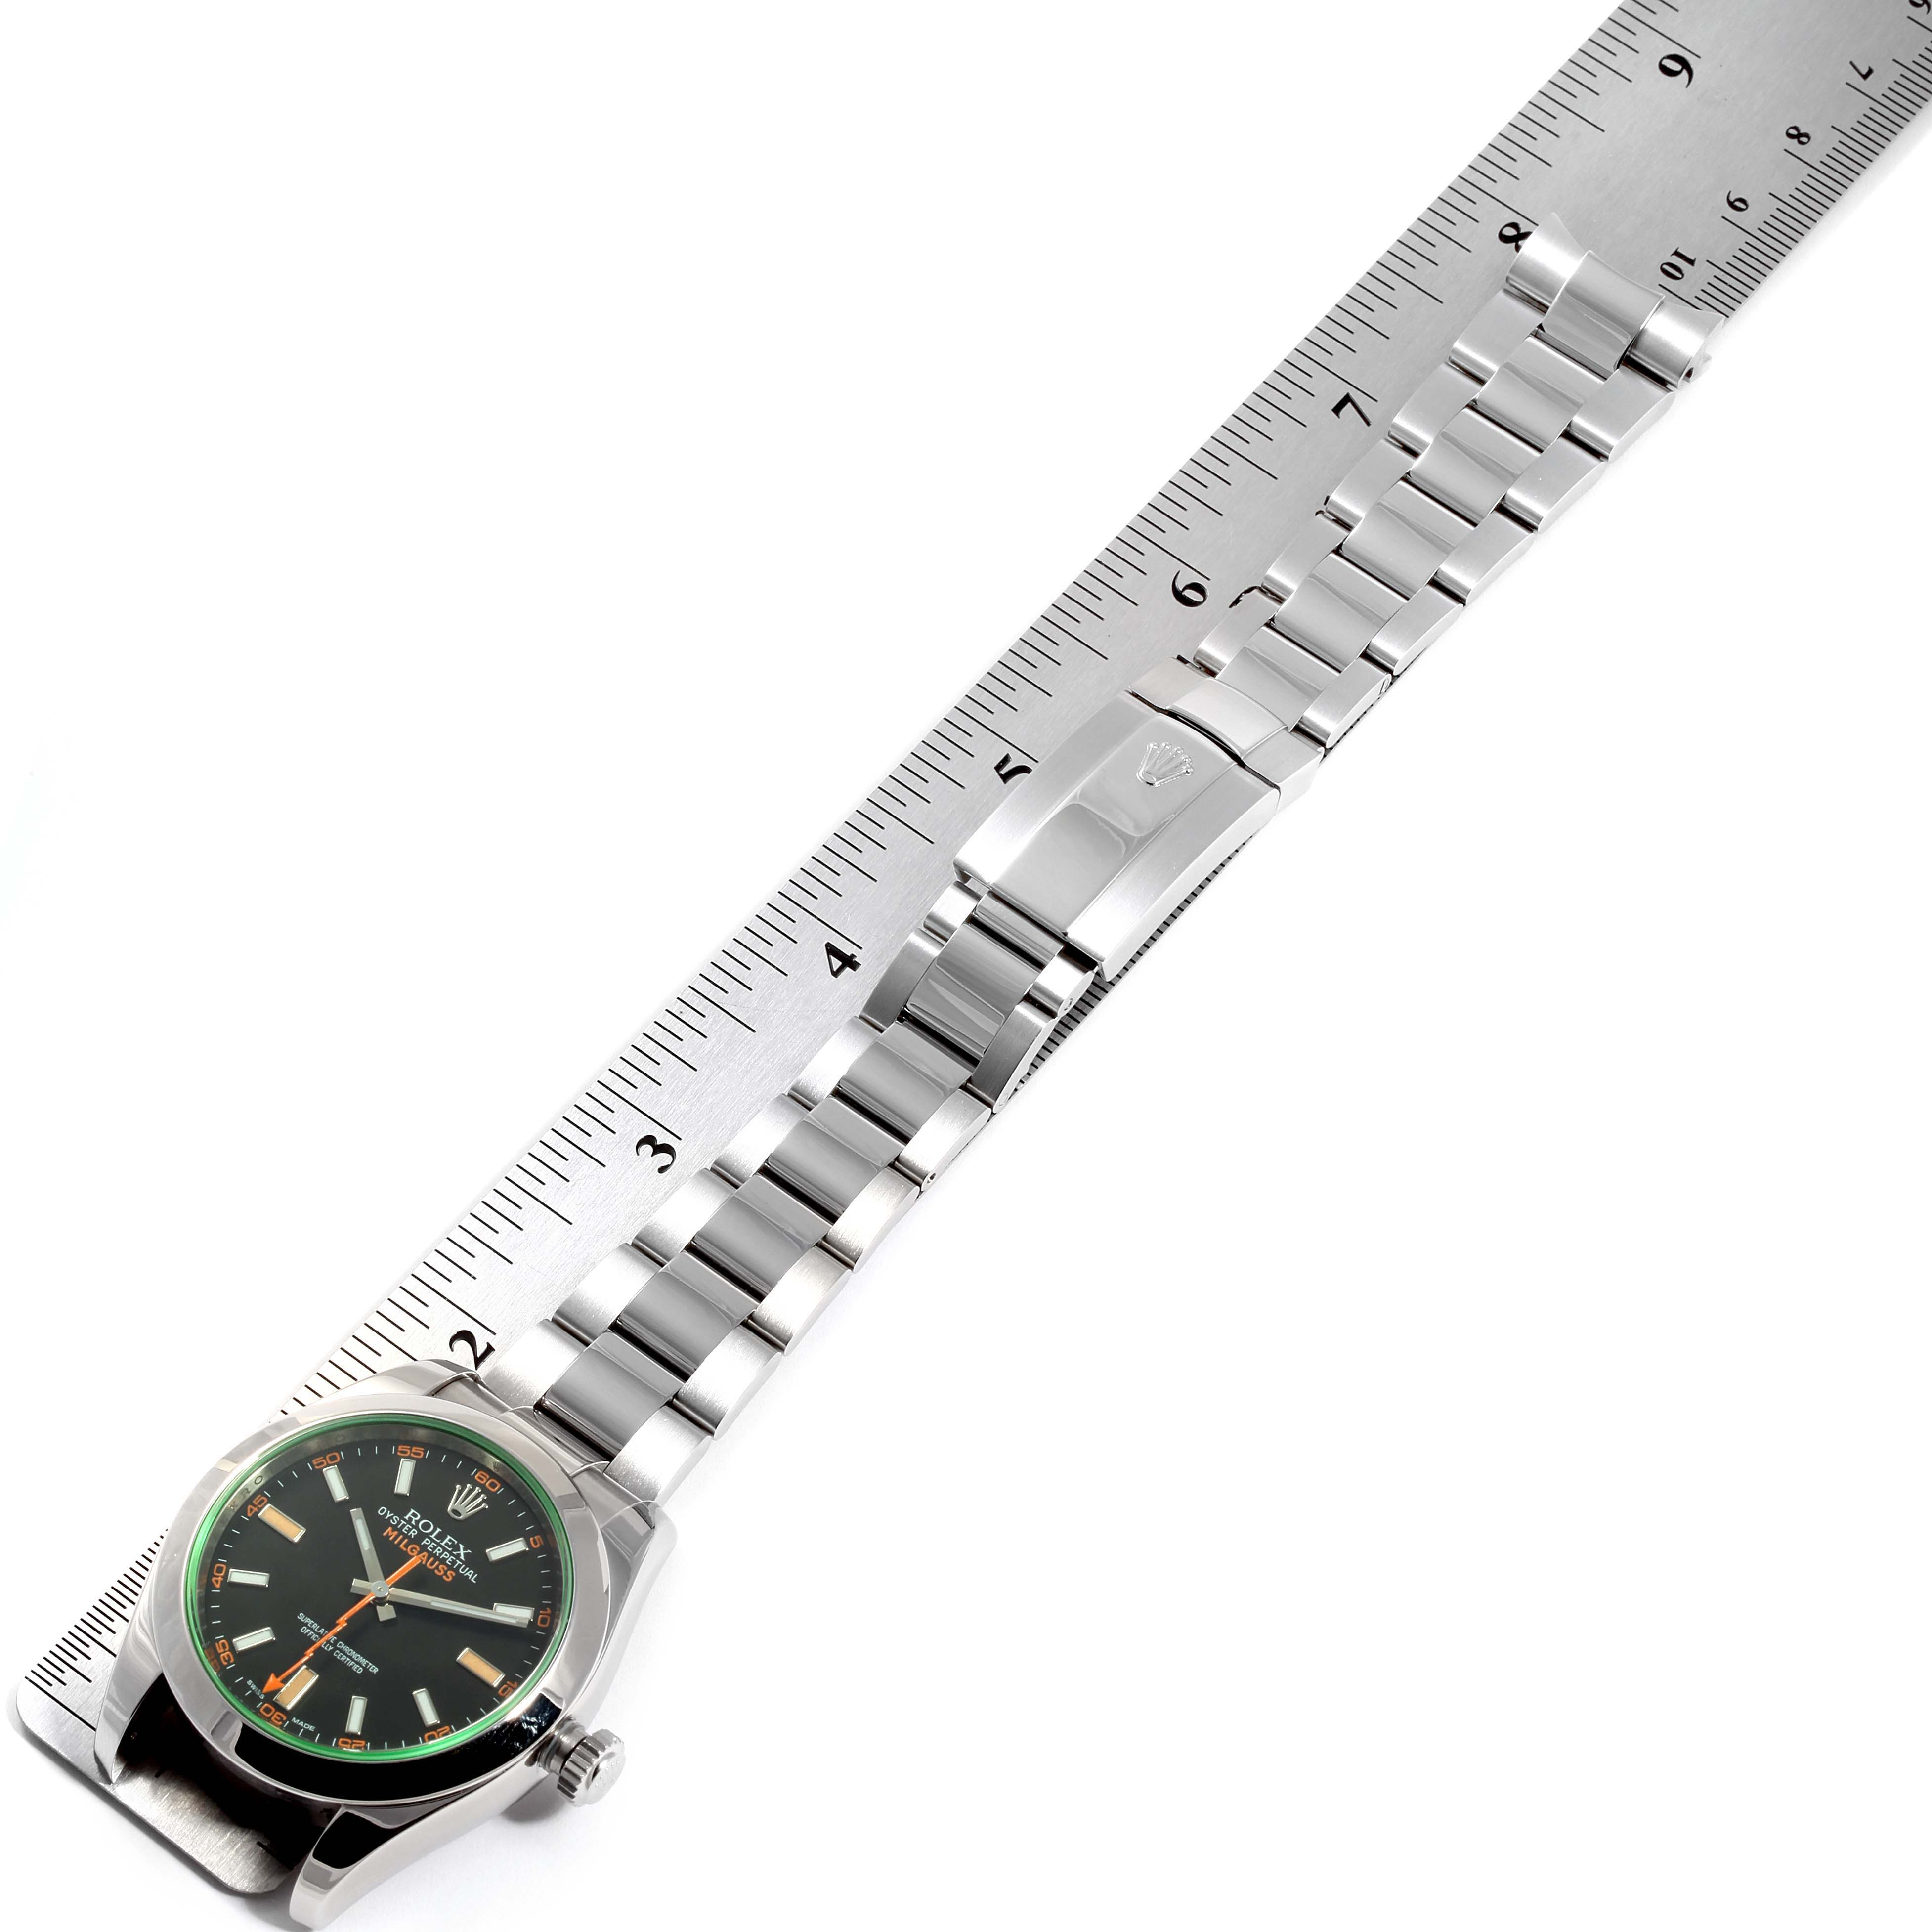 Rolex Milgauss Black Dial Green Crystal Mens Watch 116400GV Box Card SwissWatchExpo